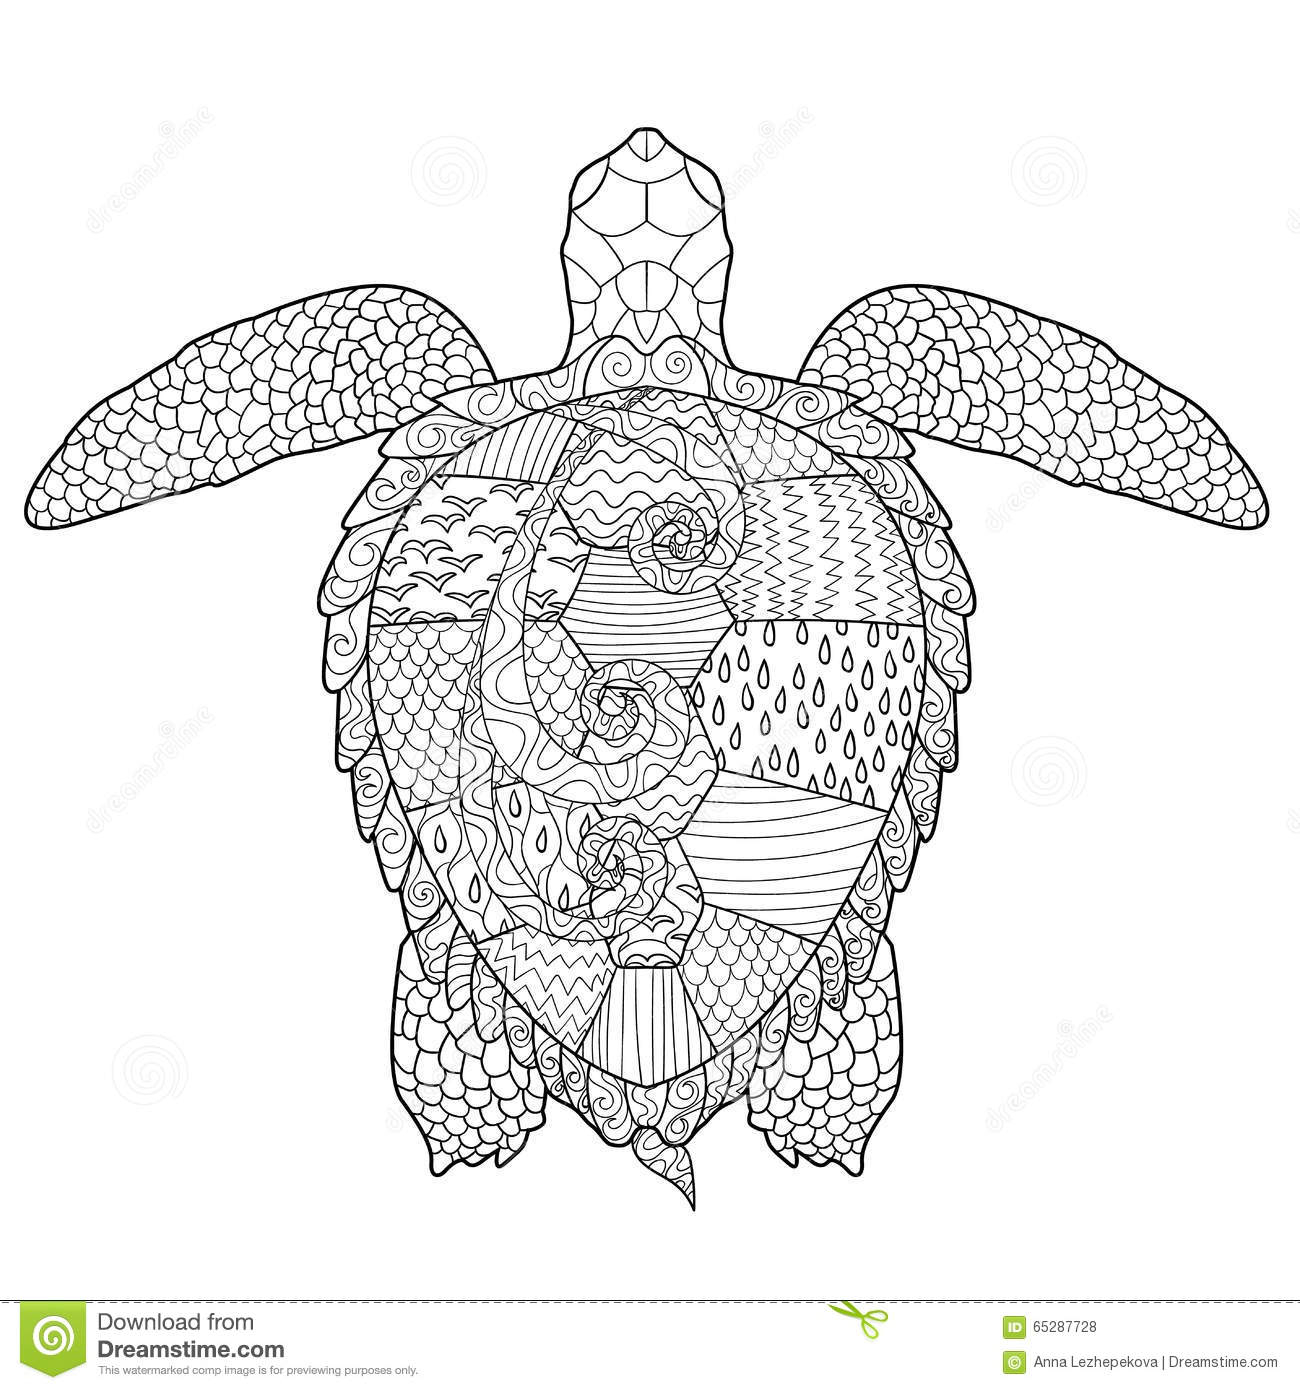 - Sea Turtle Coloring Page Sea Turtle Adult Coloring Pages Coloring